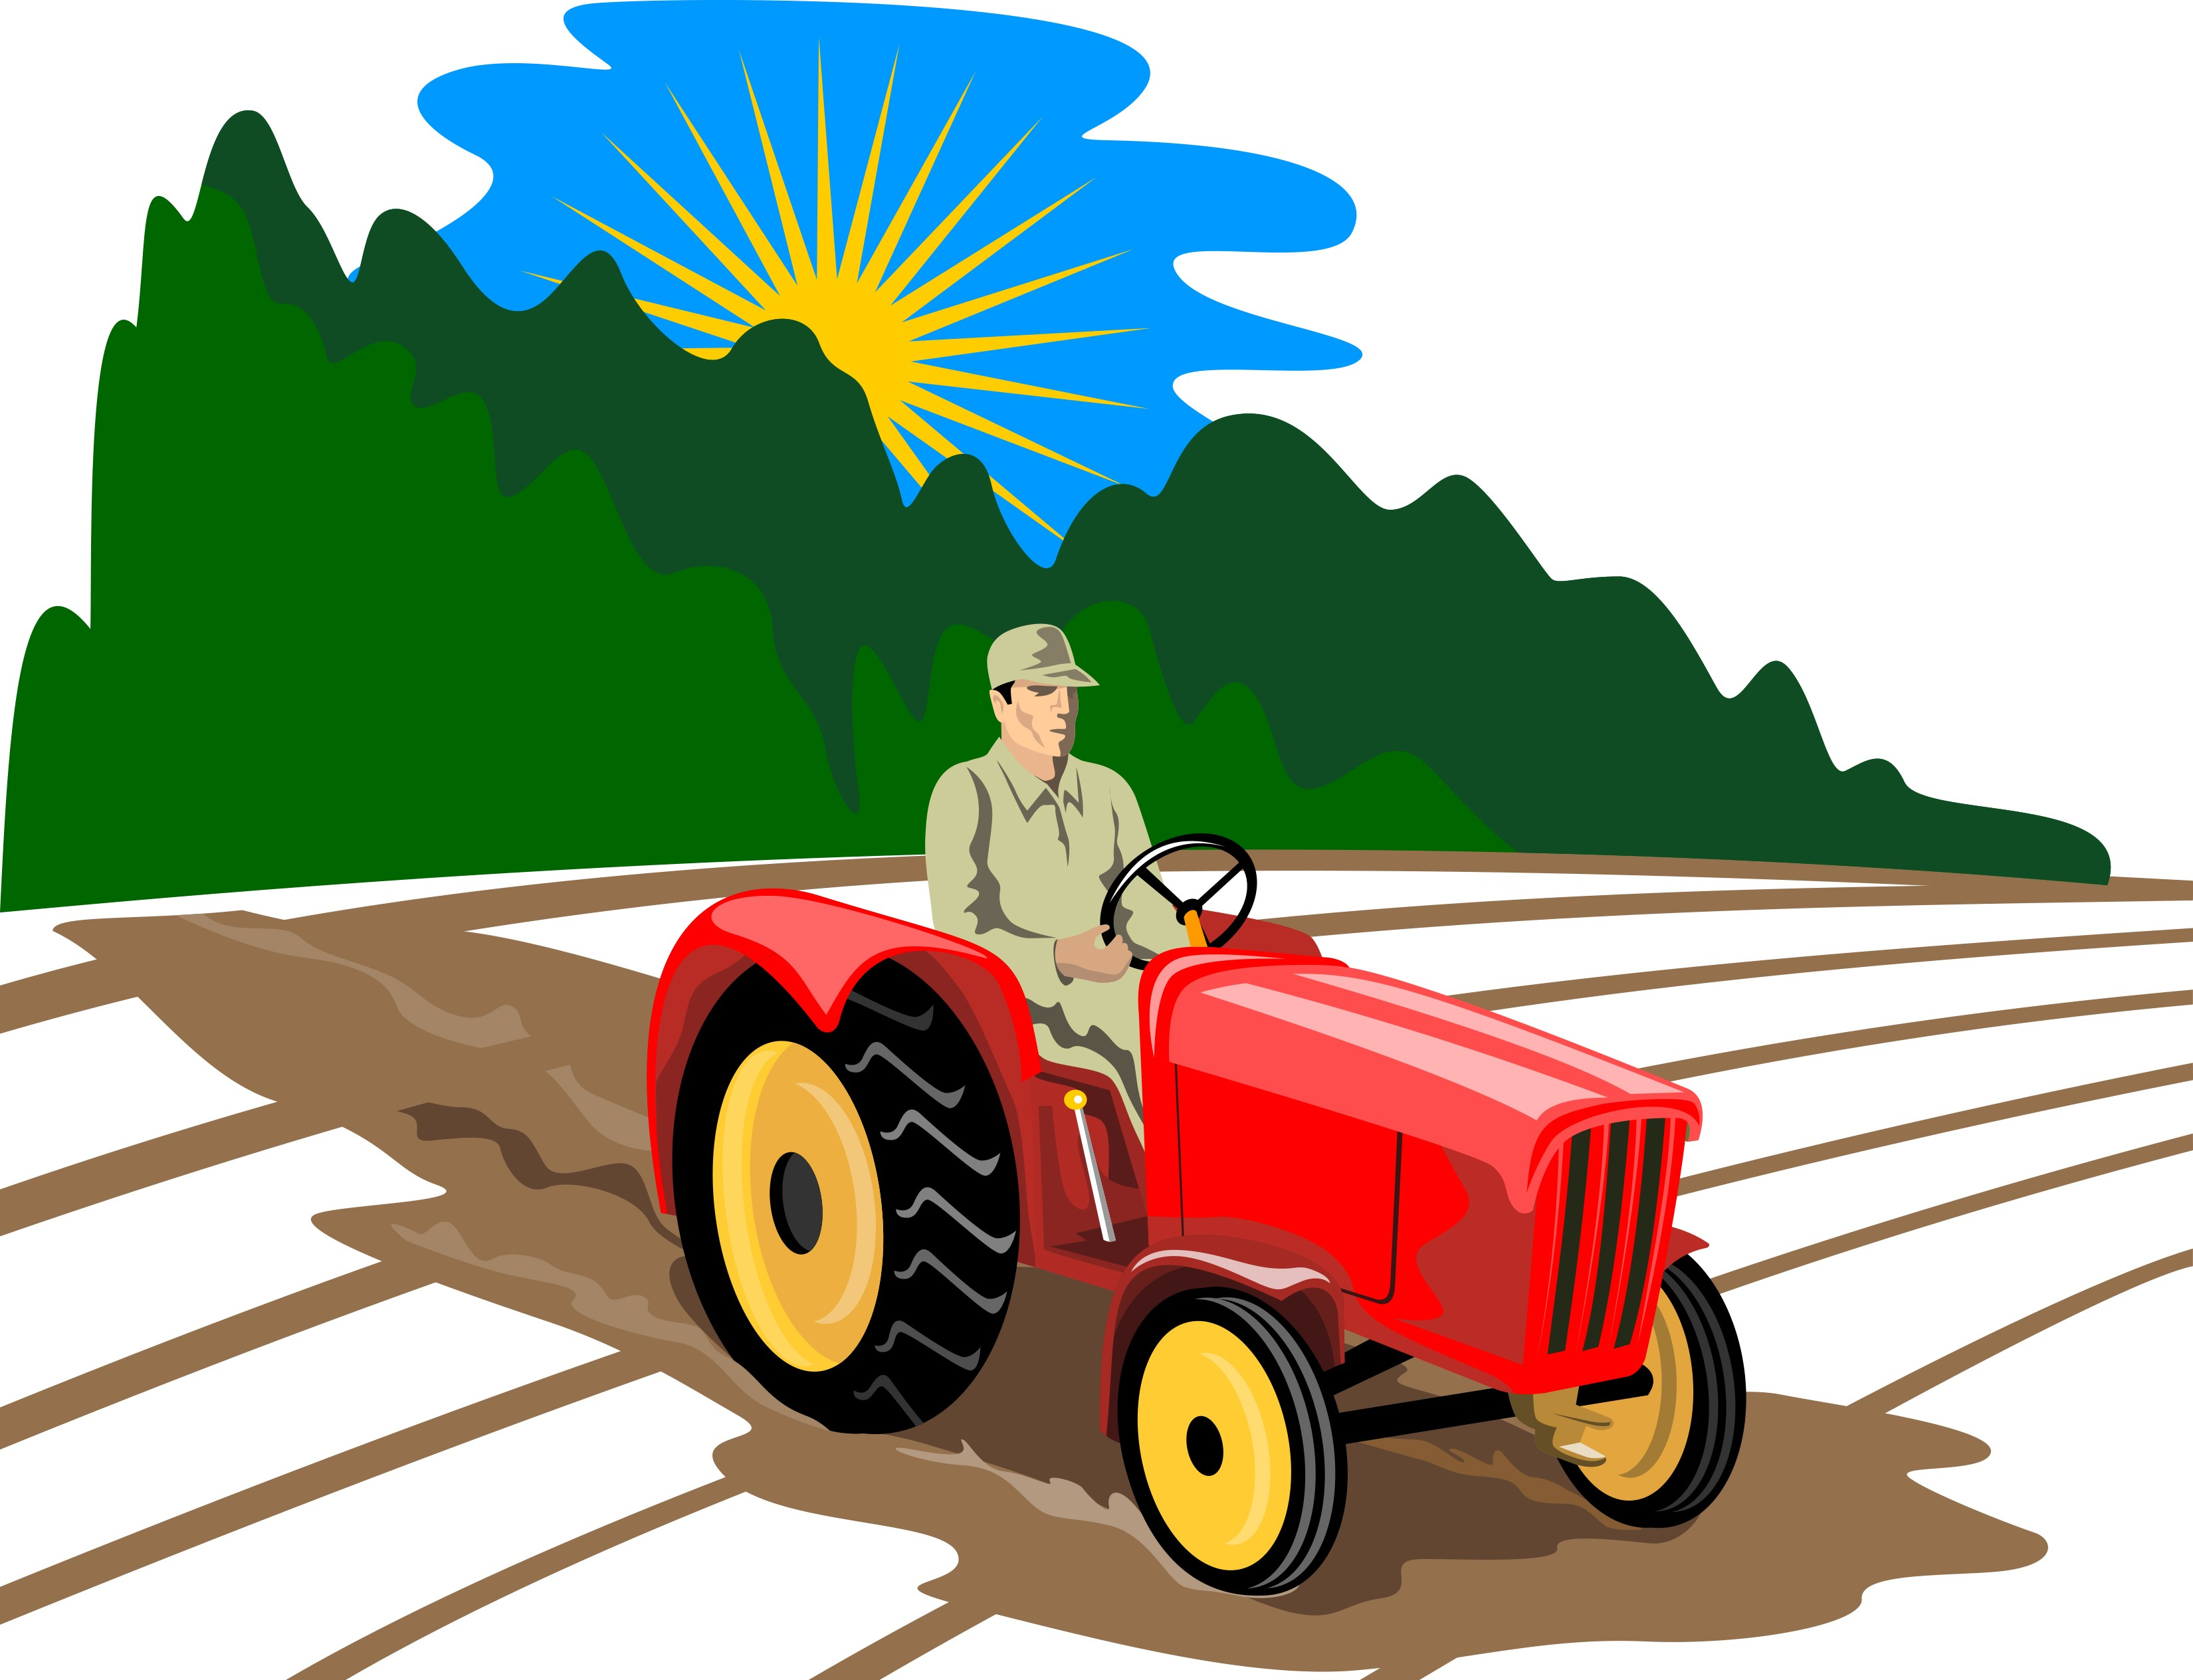 Tractor clipart tactor. Hd free images cartoon